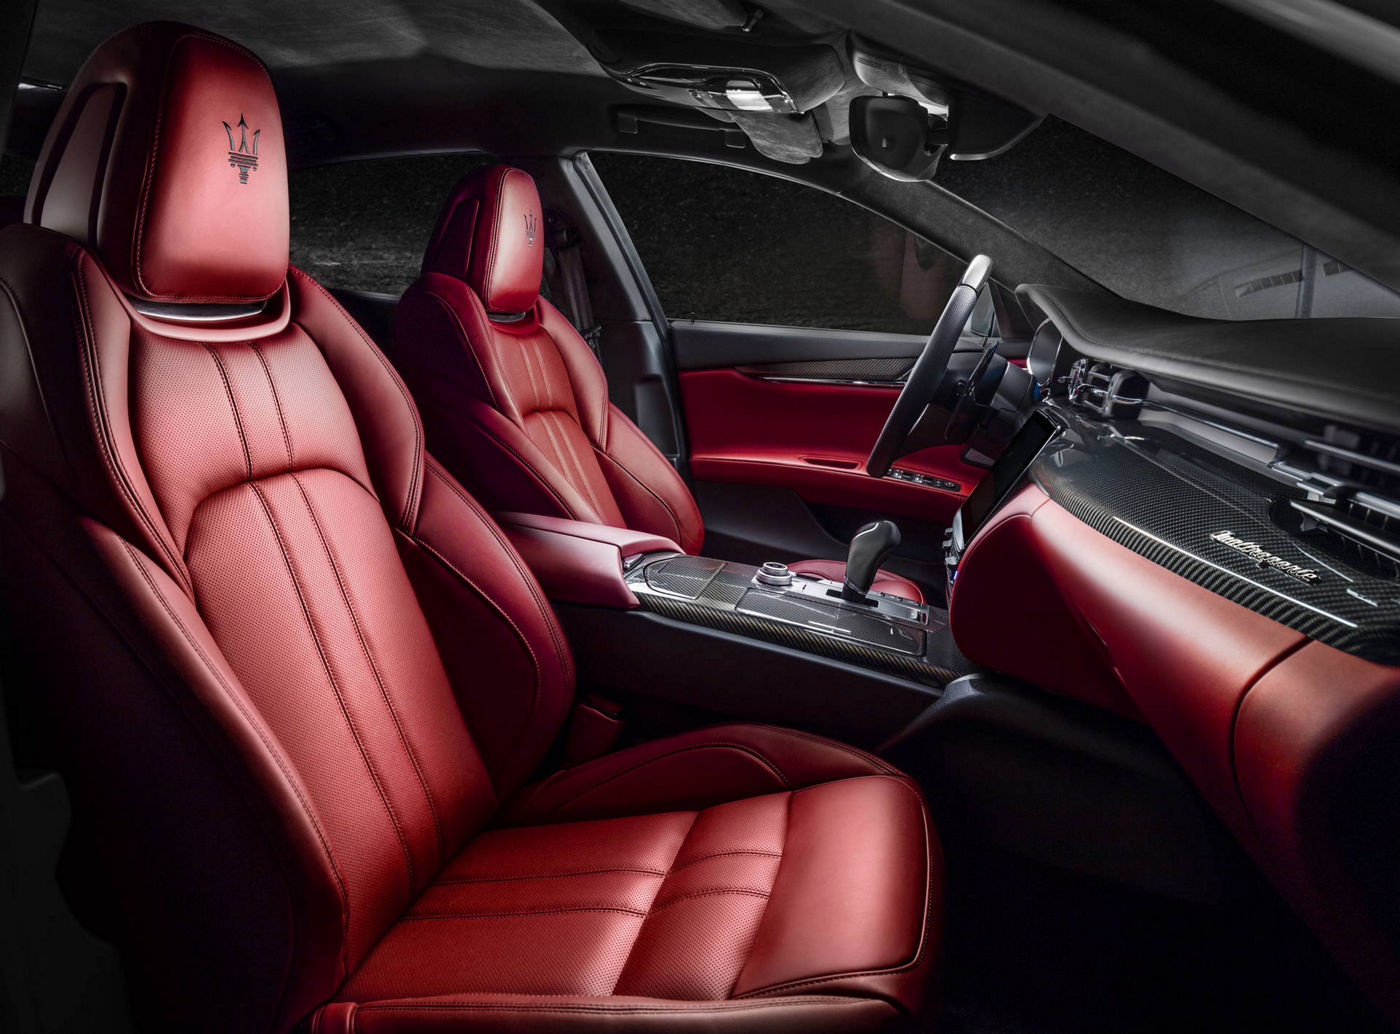 Red and black interiors of a Maserati Quattroporte: details for comfort in the luxury saloon